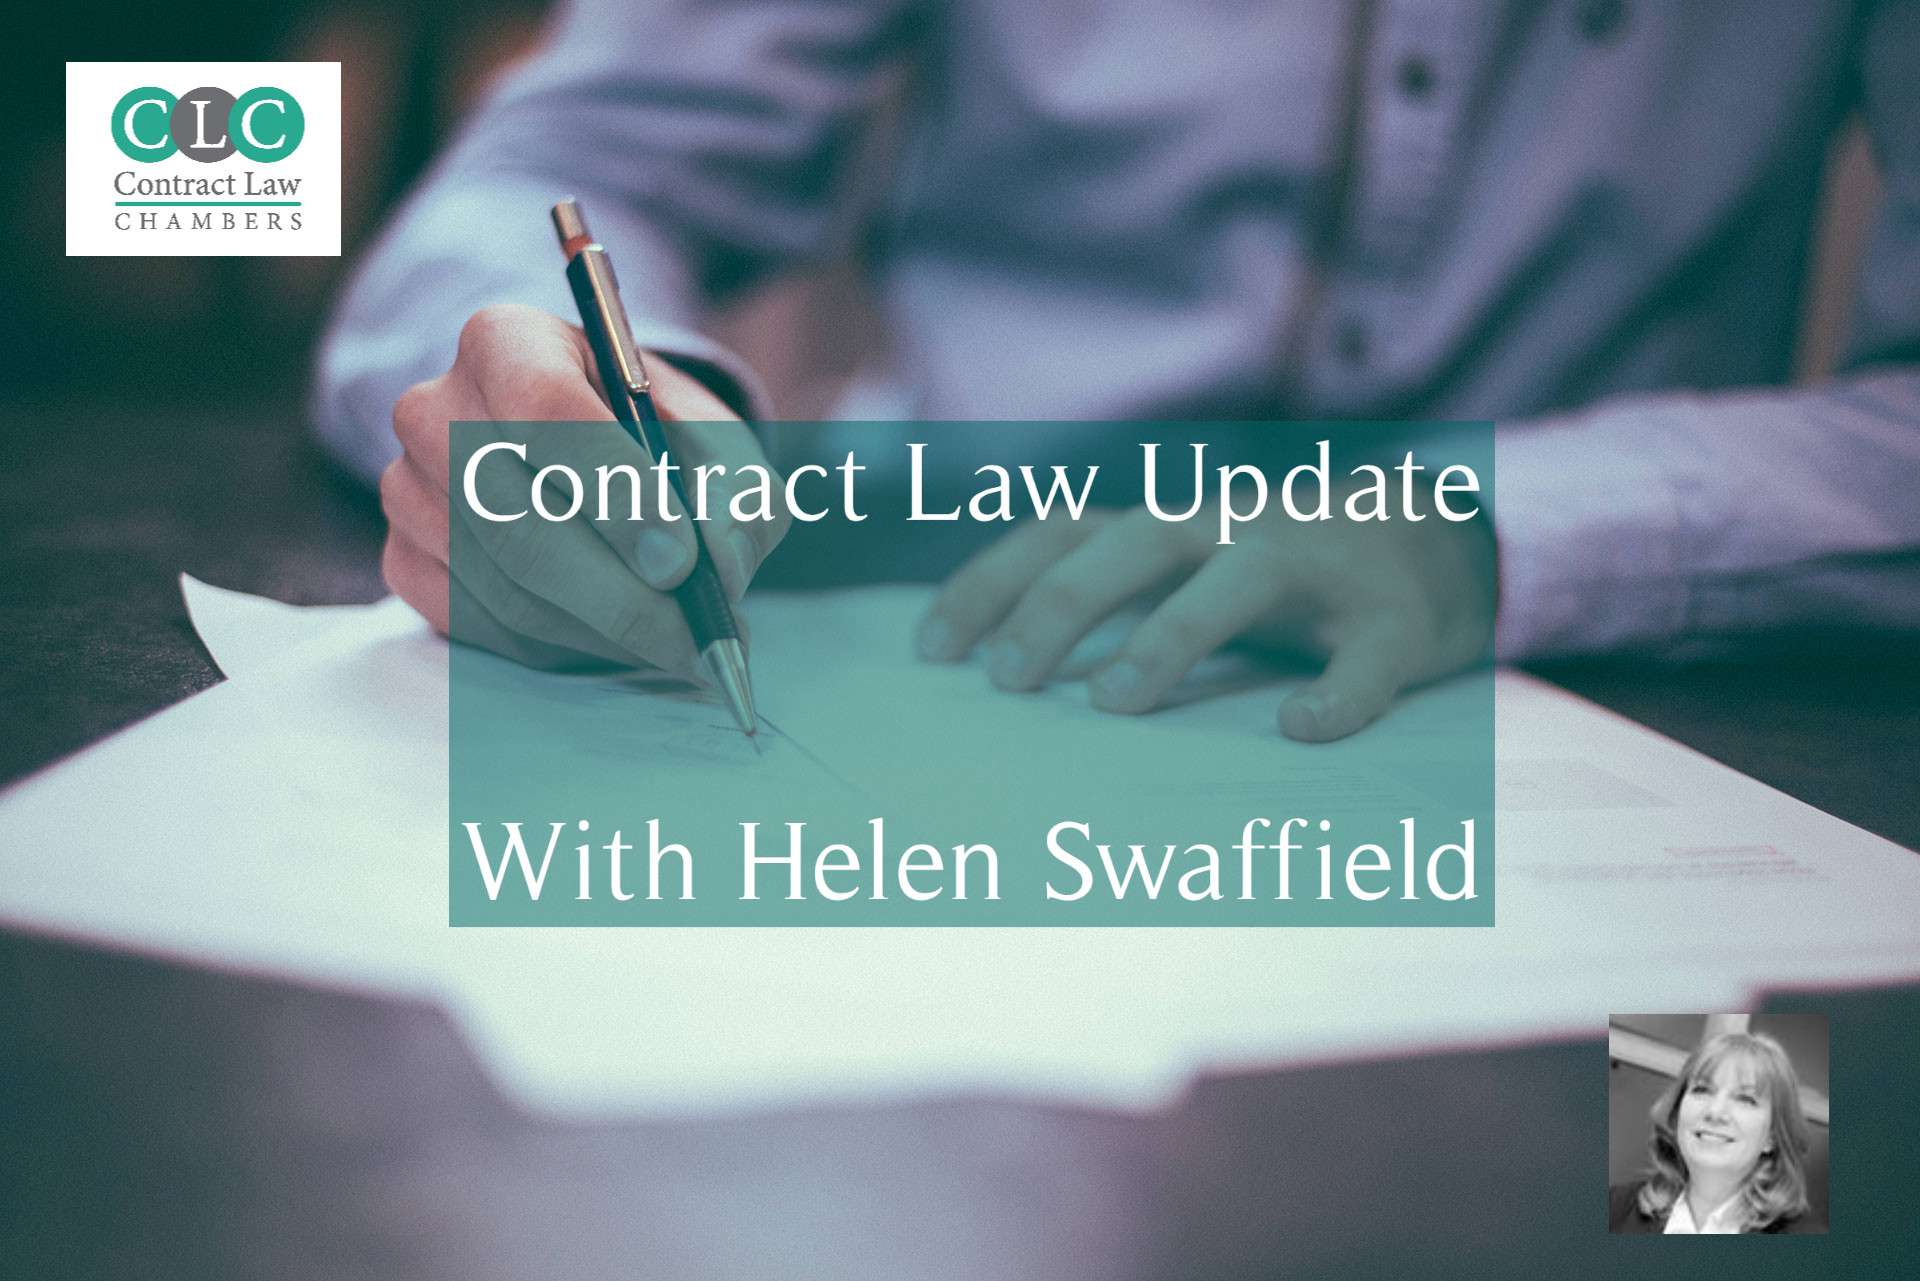 Contract Law Update